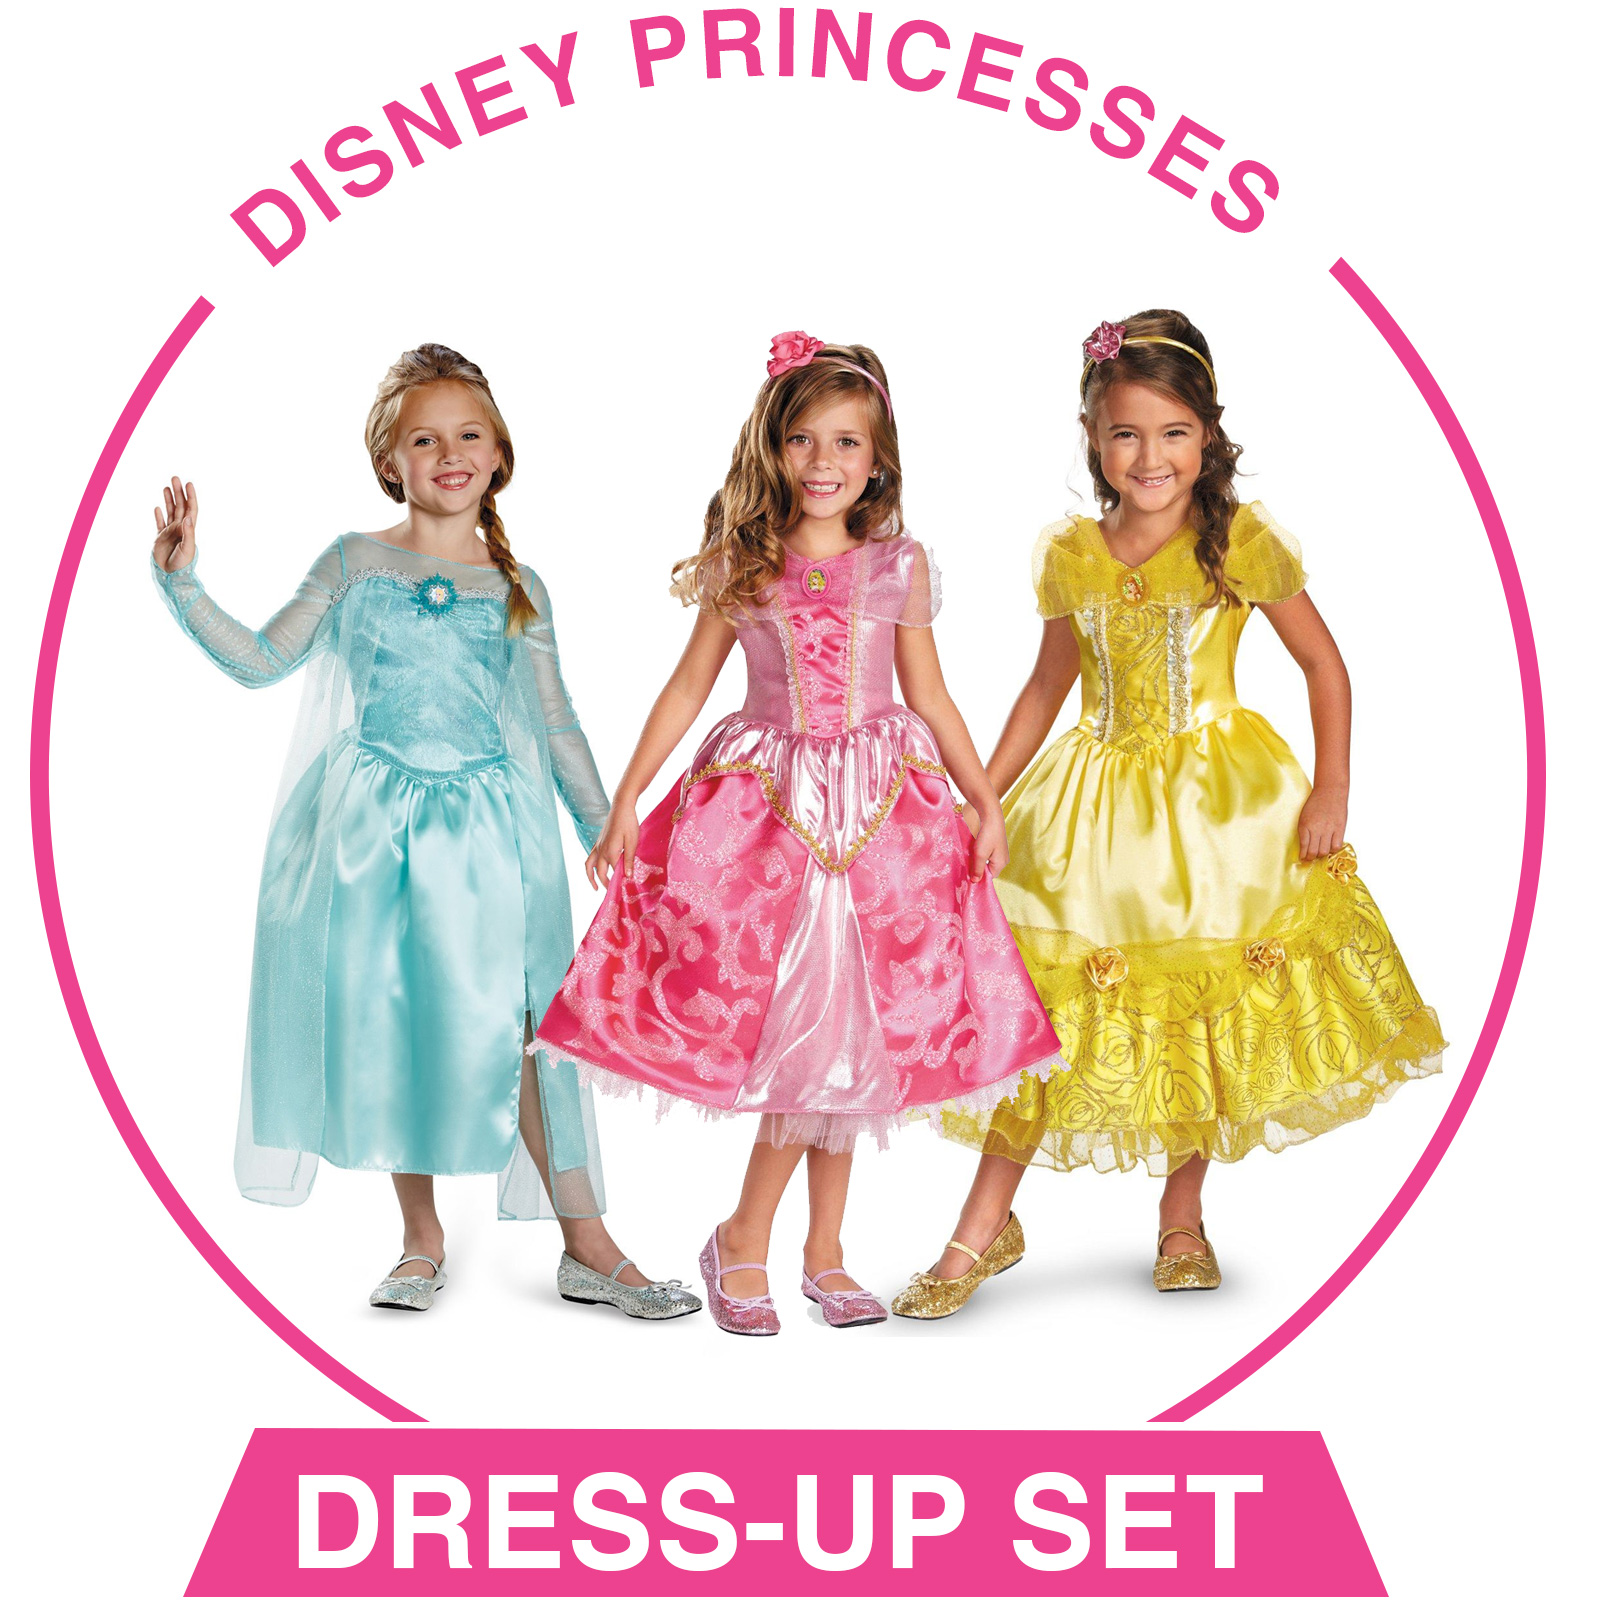 Dress Up Costume Ideas - BuyCostumes.com